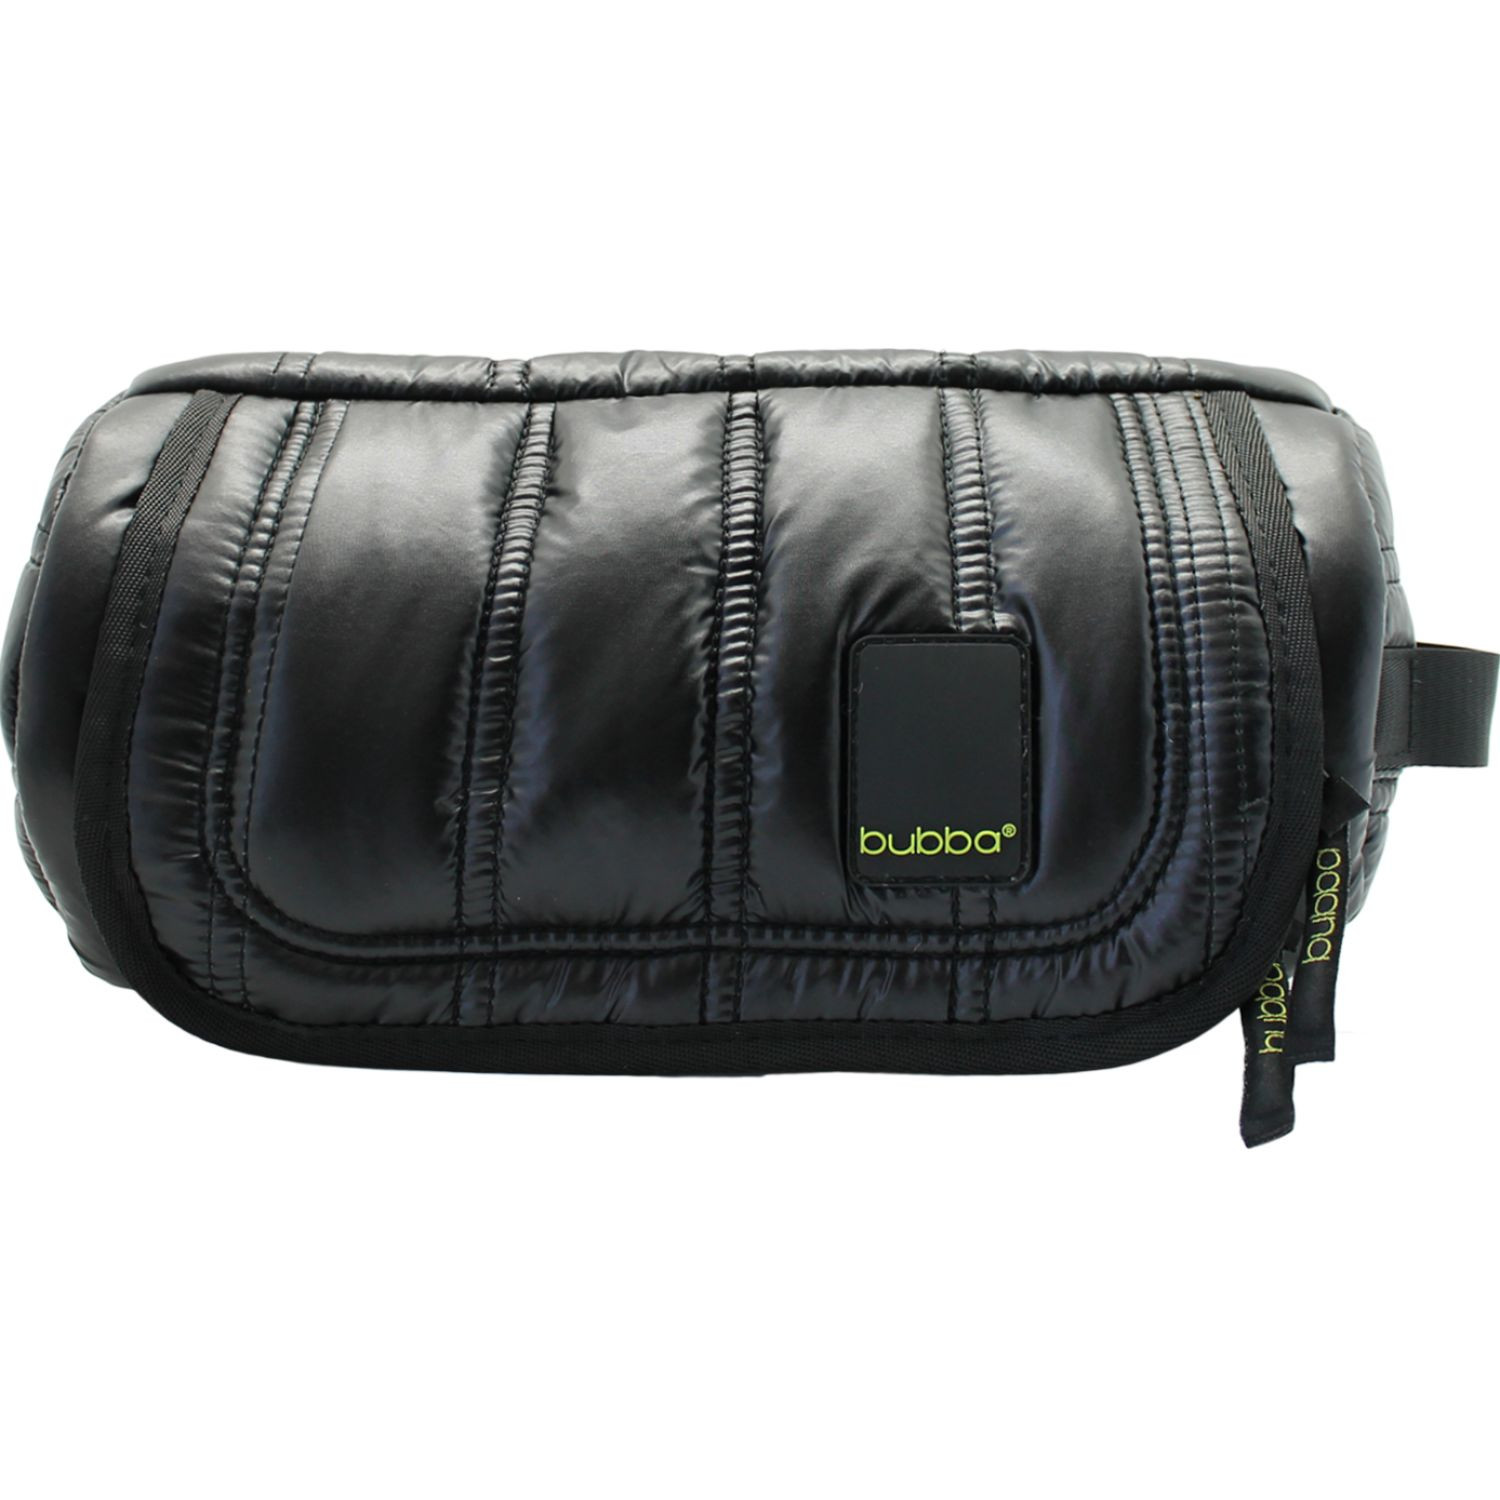 BUBBA BAGS Carry Bag Classic Negro Cosmetiqueras